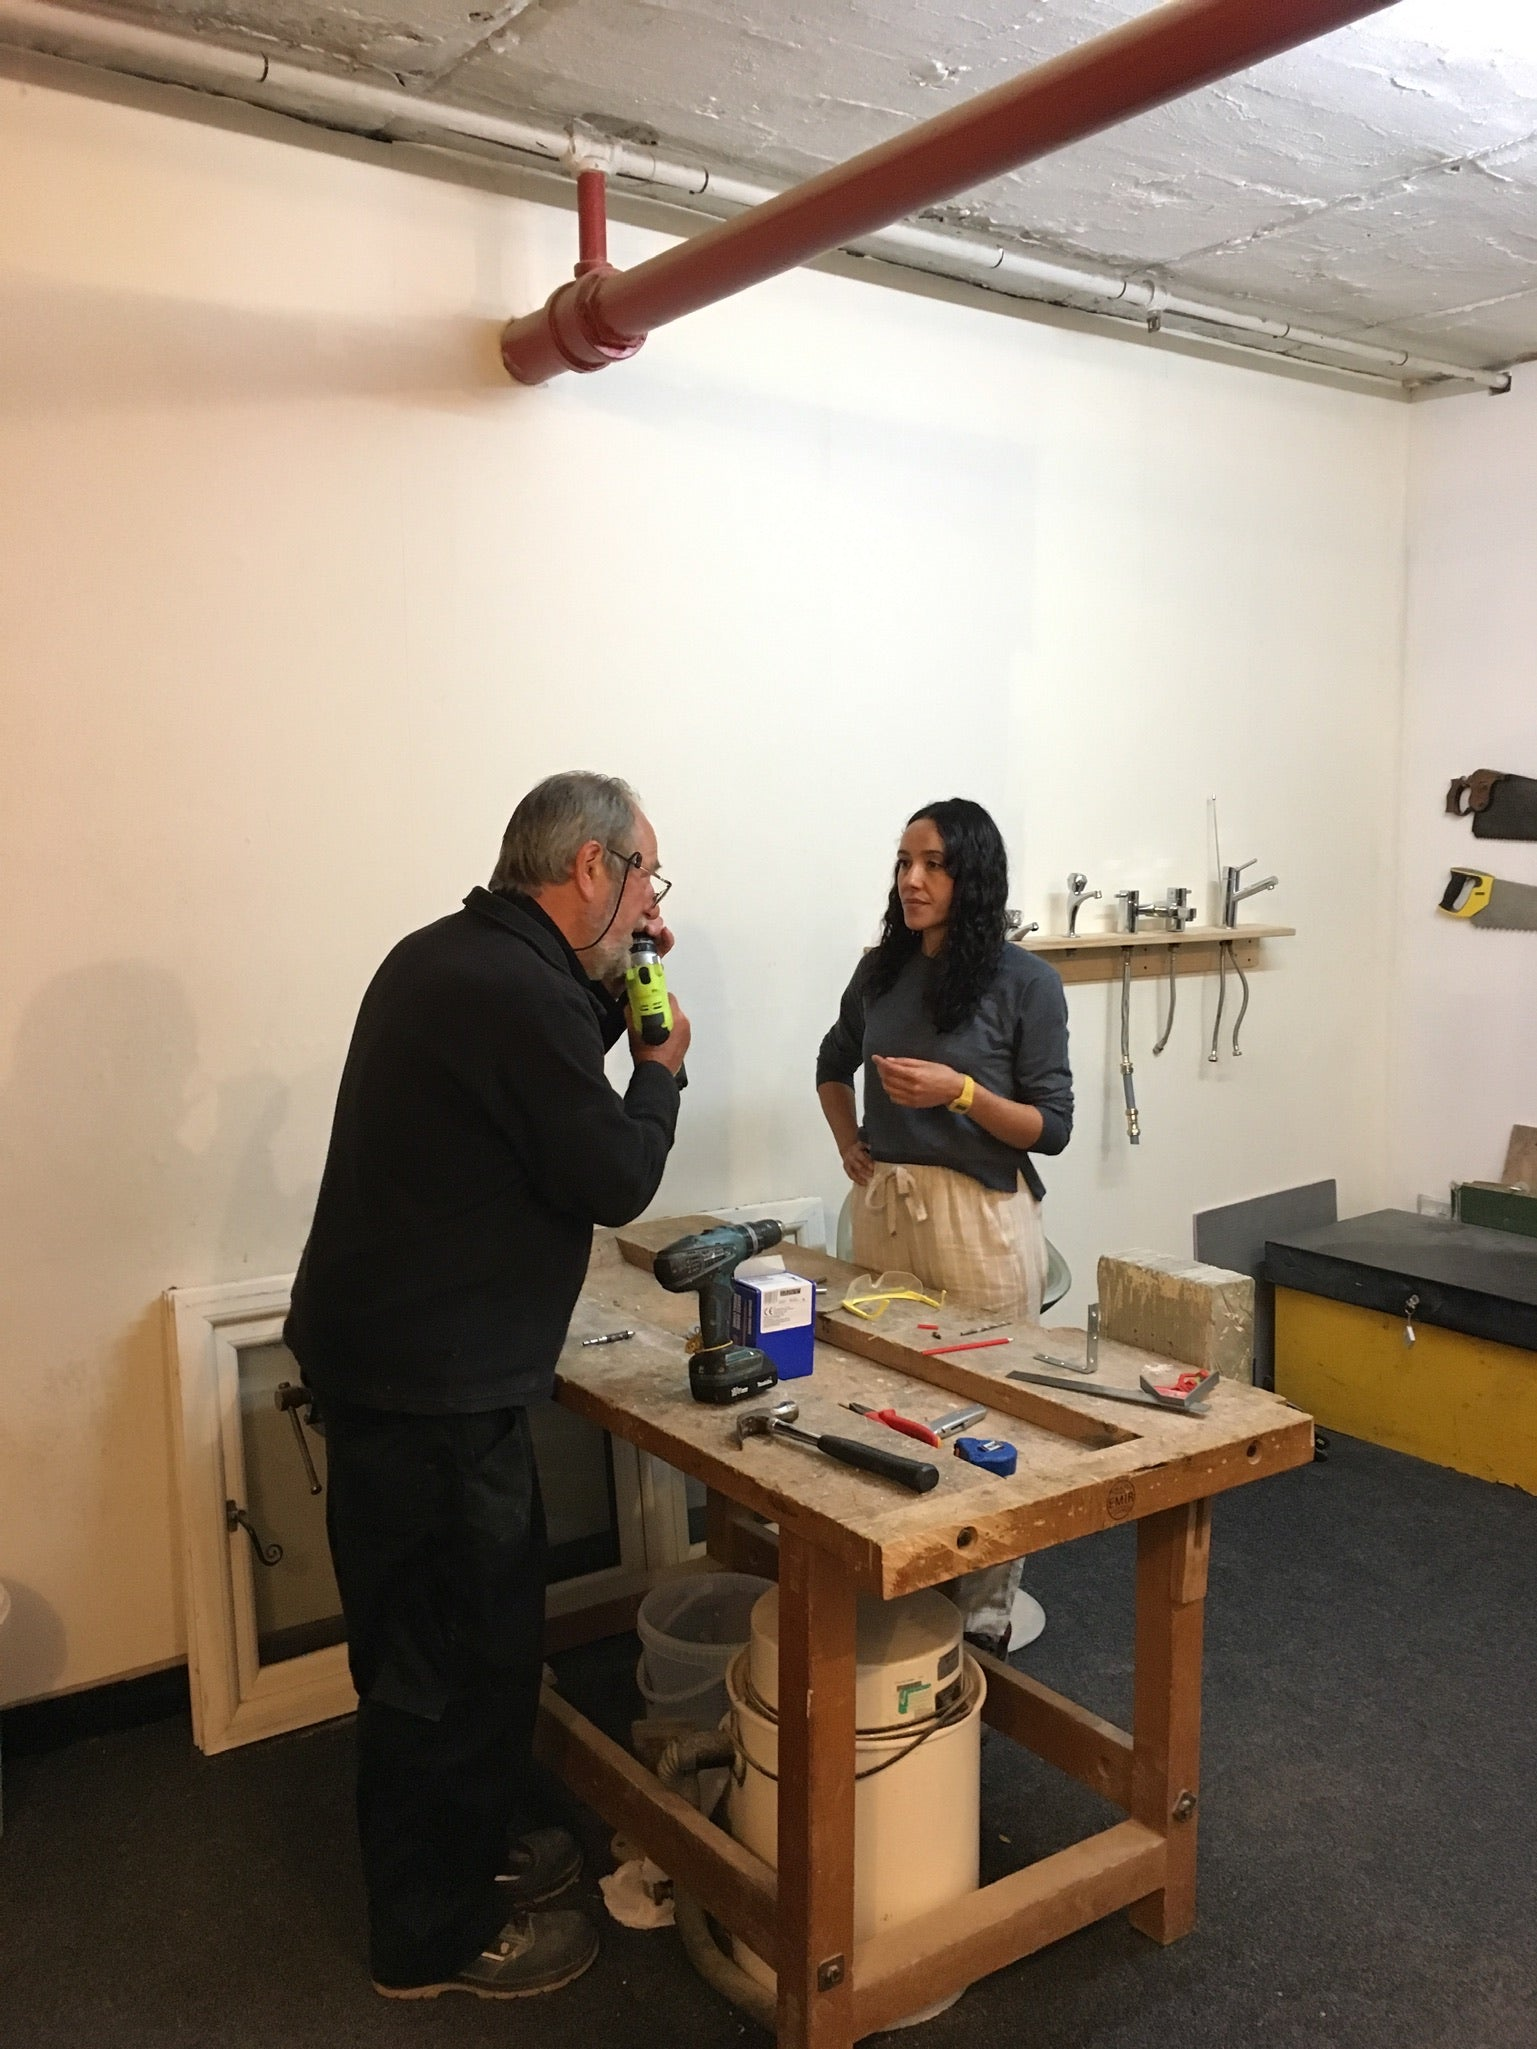 GROUPON UPGRADE from 1 Day Beginners DIY to the 2 Days Hand & Power Tools Course